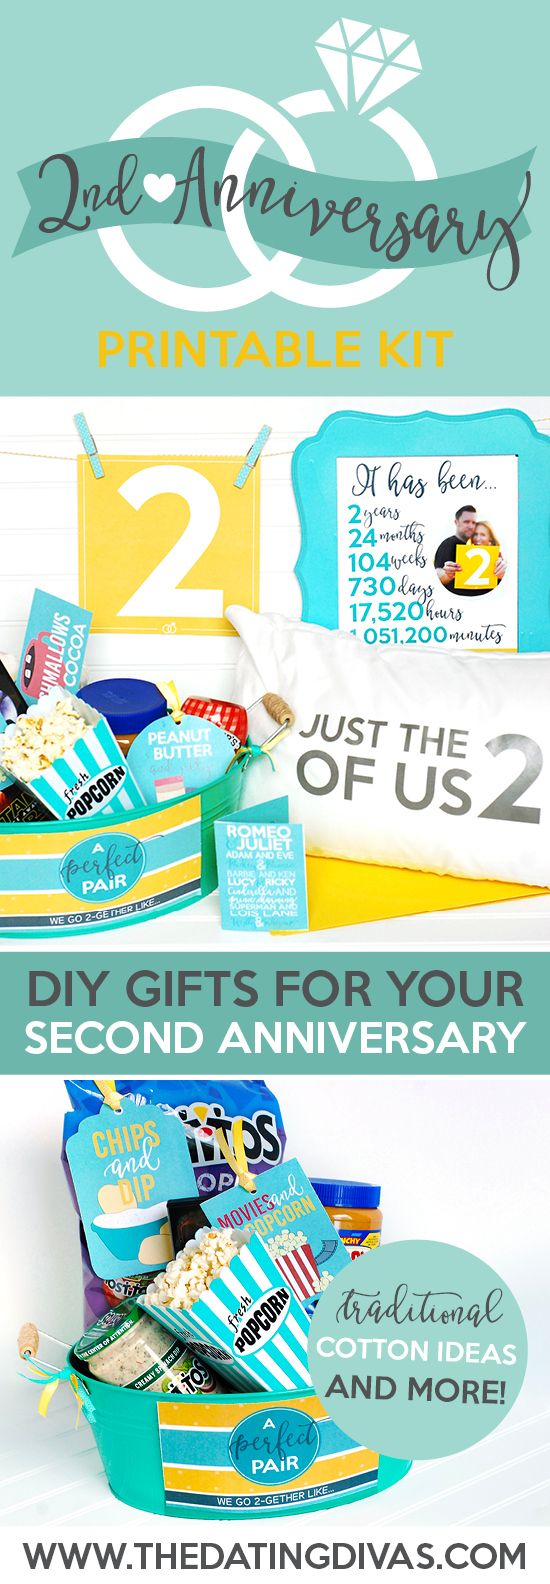 2nd Wedding Anniversary Diy Gifts : second anniversary gift printable kit second anniversary gift ideas ...